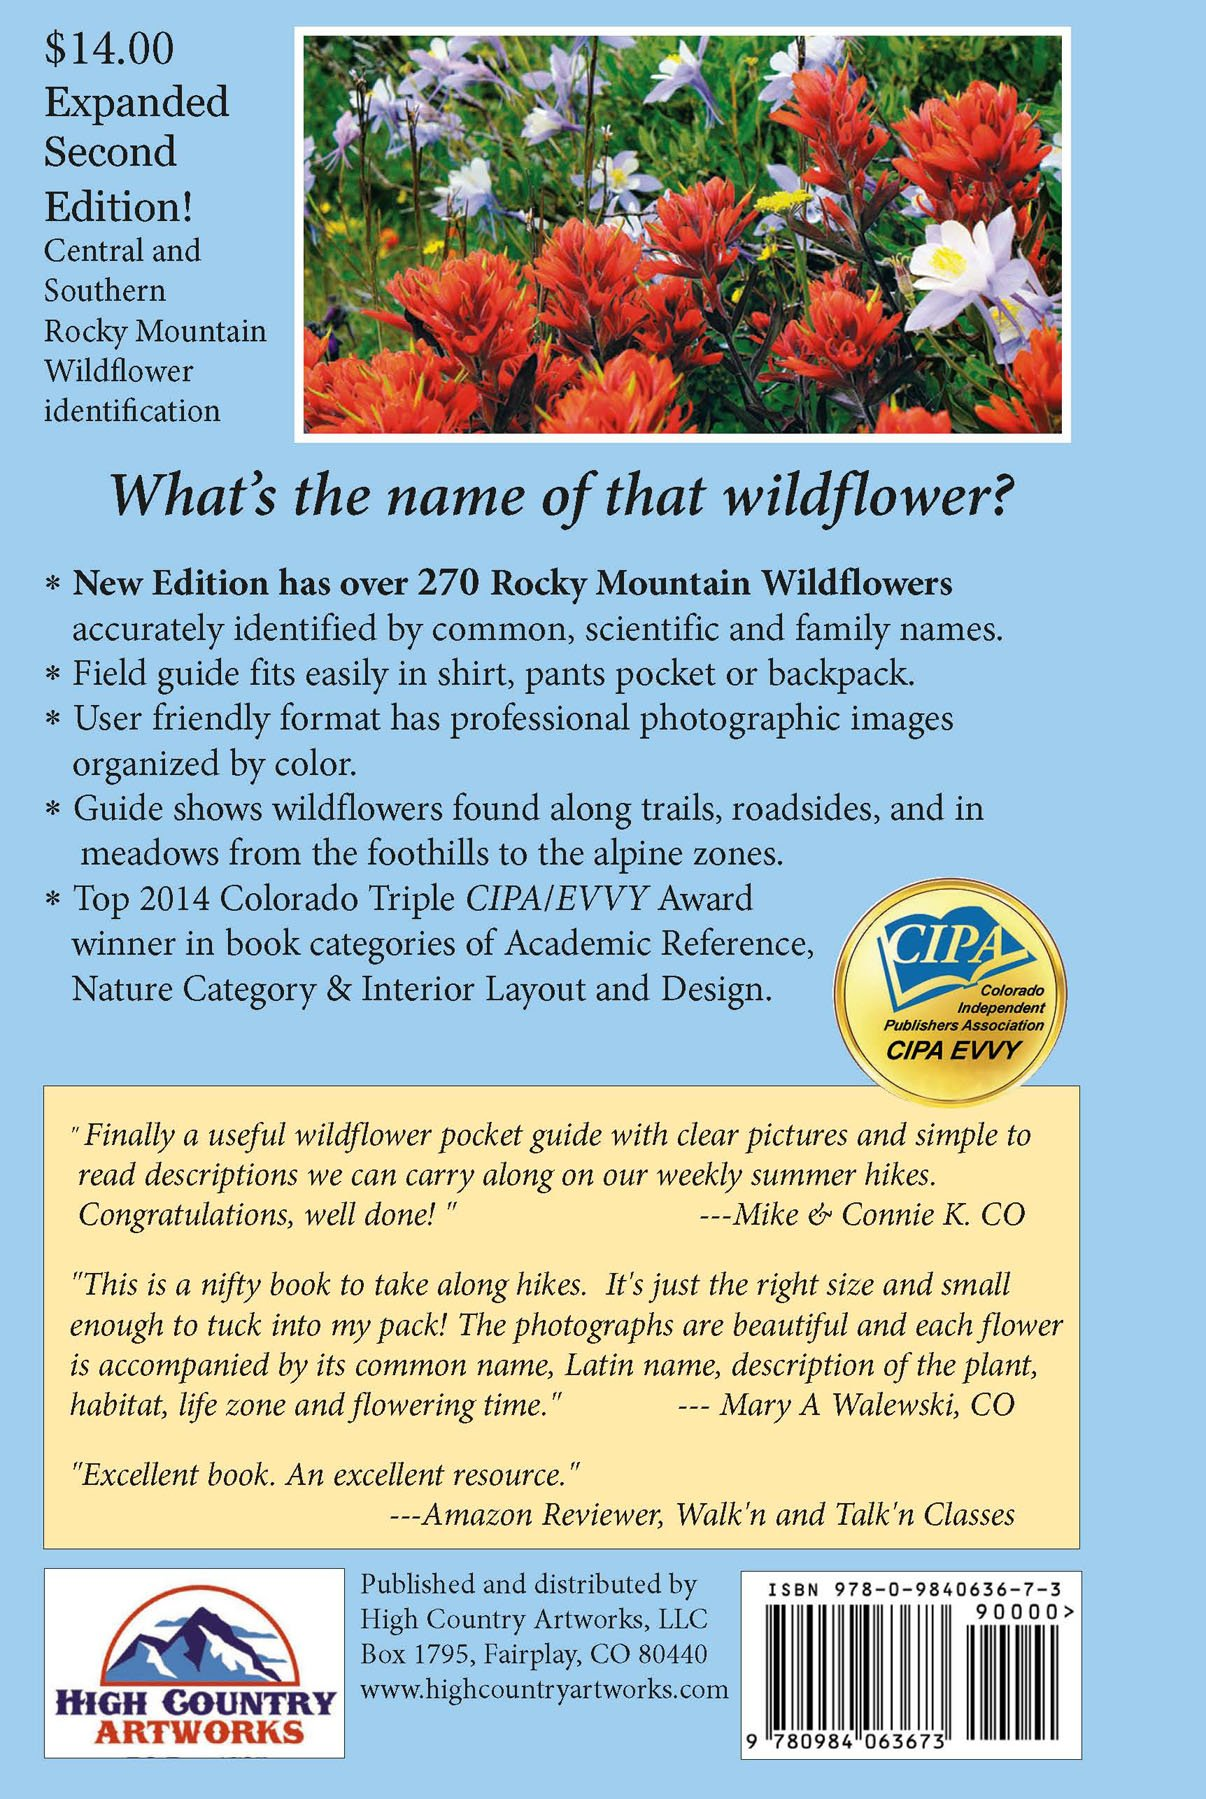 Rocky mountain wildflowers field guide linda s nagy linda nagy rocky mountain wildflowers field guide linda s nagy linda nagy bernie nagy mariska hamstra al schneider vivian pershing keith pershing izmirmasajfo Images